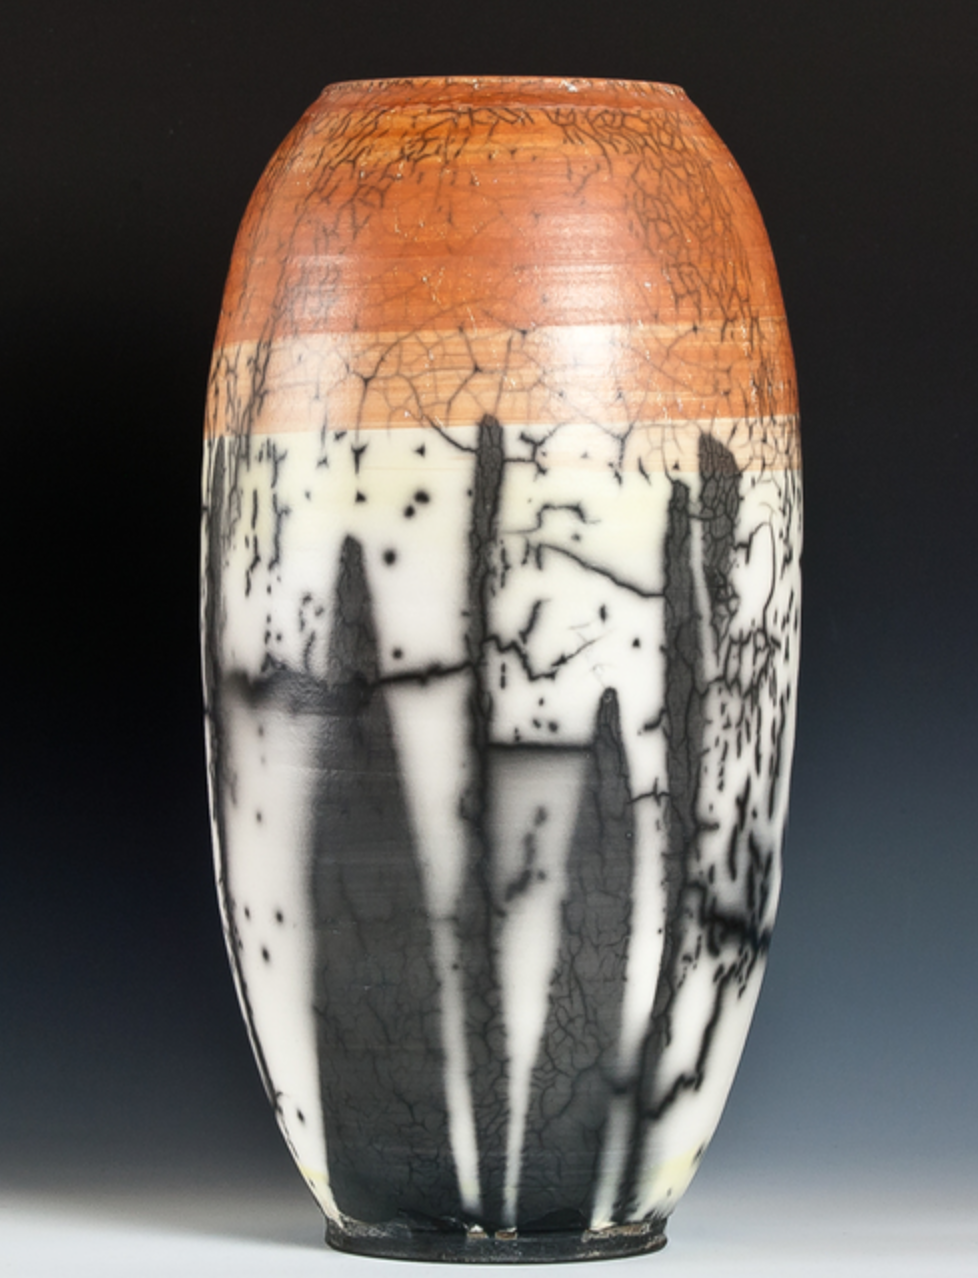 Frank Nemick - Large Raku and stoneware vessels of my own making and glazing. I do Naked Raku, Horsehair Raku, & Stoneware firings at my studio in the Wet Mountains of Southern Colorado. Also medium and small pots.